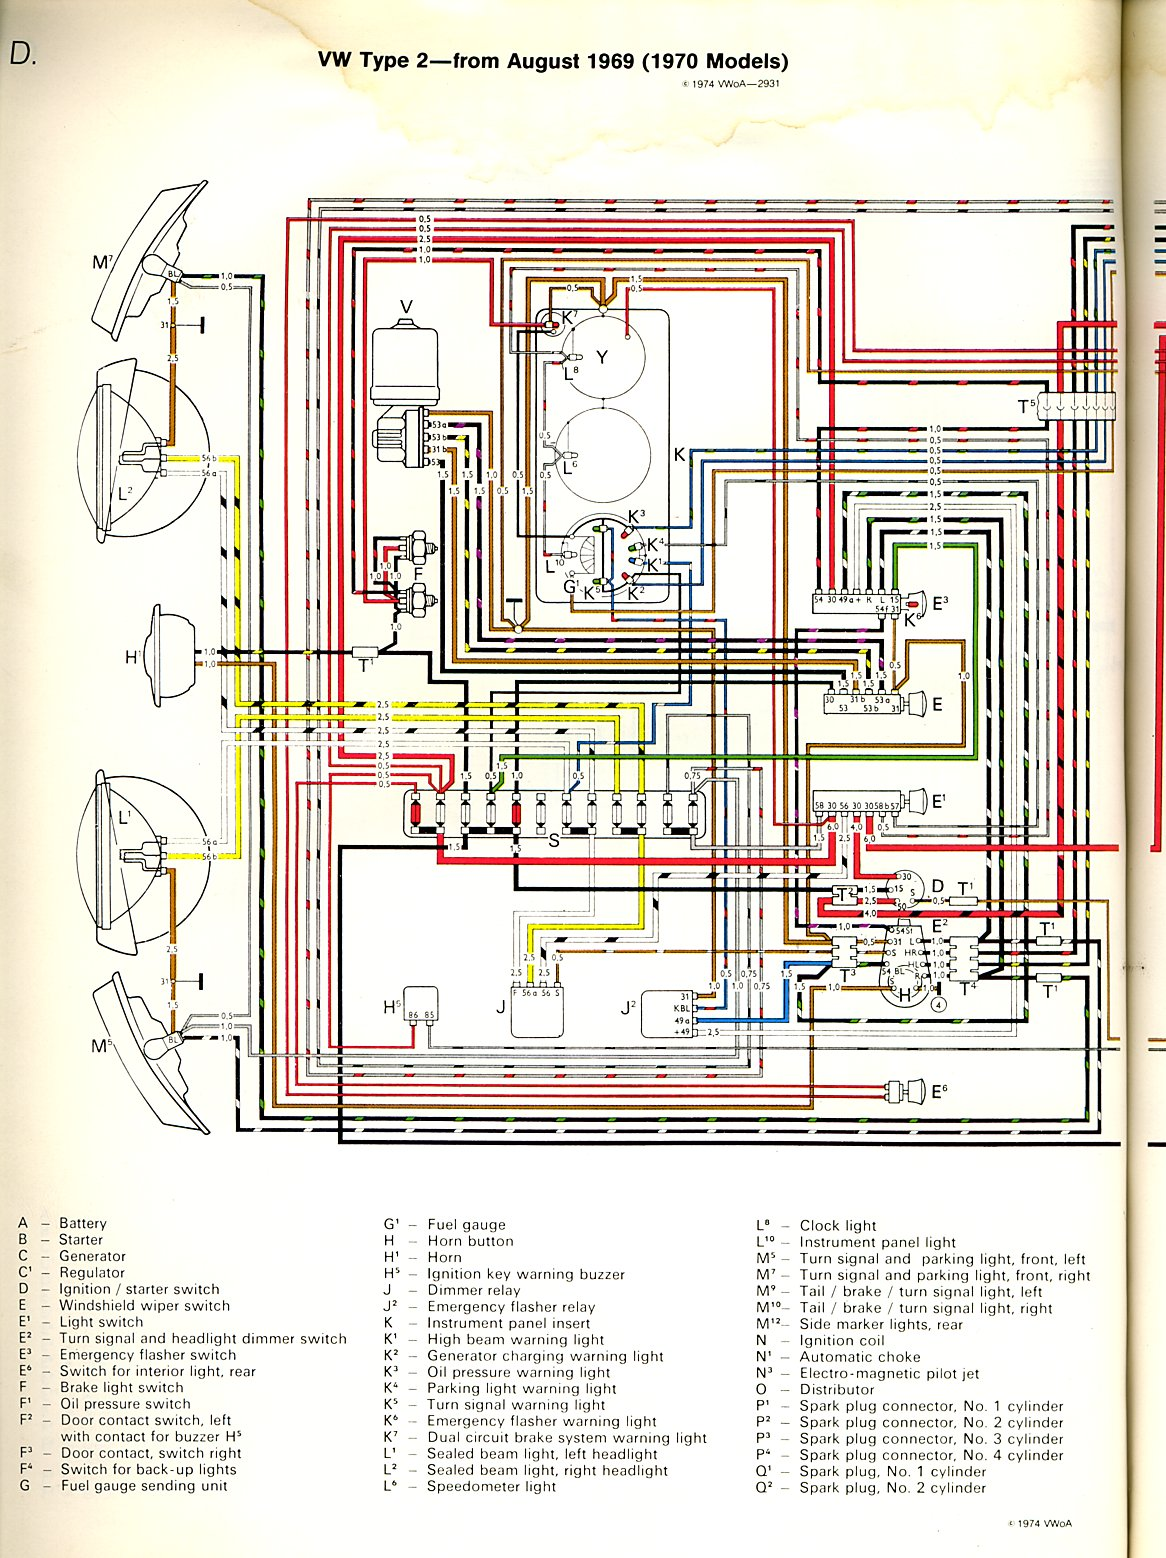 Type 2 Wiring Diagrams 68 Mustang Turn Signal Switch Diagram